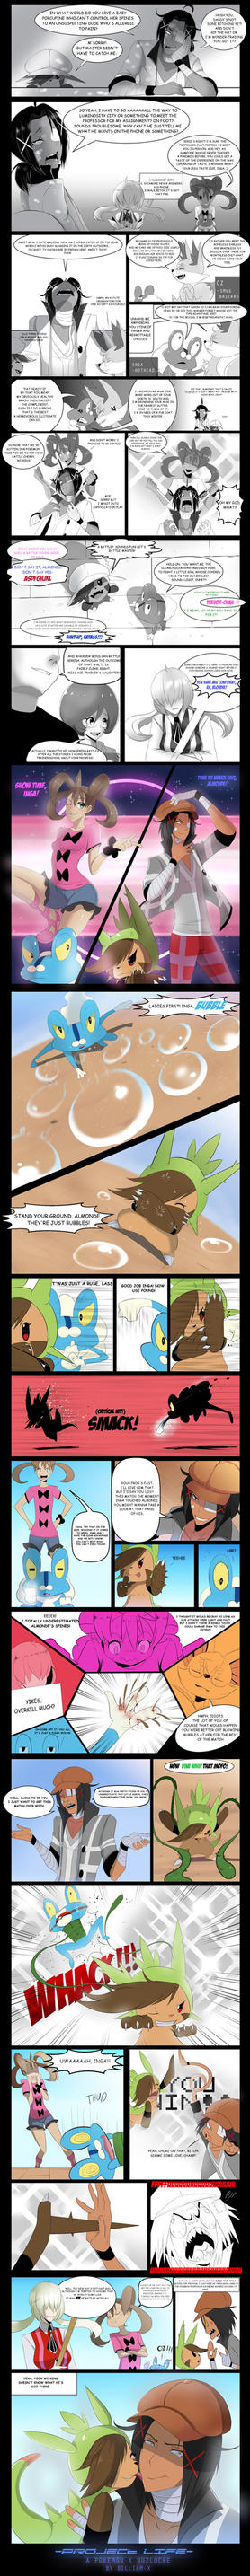 Project LIFE 03: WHIPPED. by Billiam-X